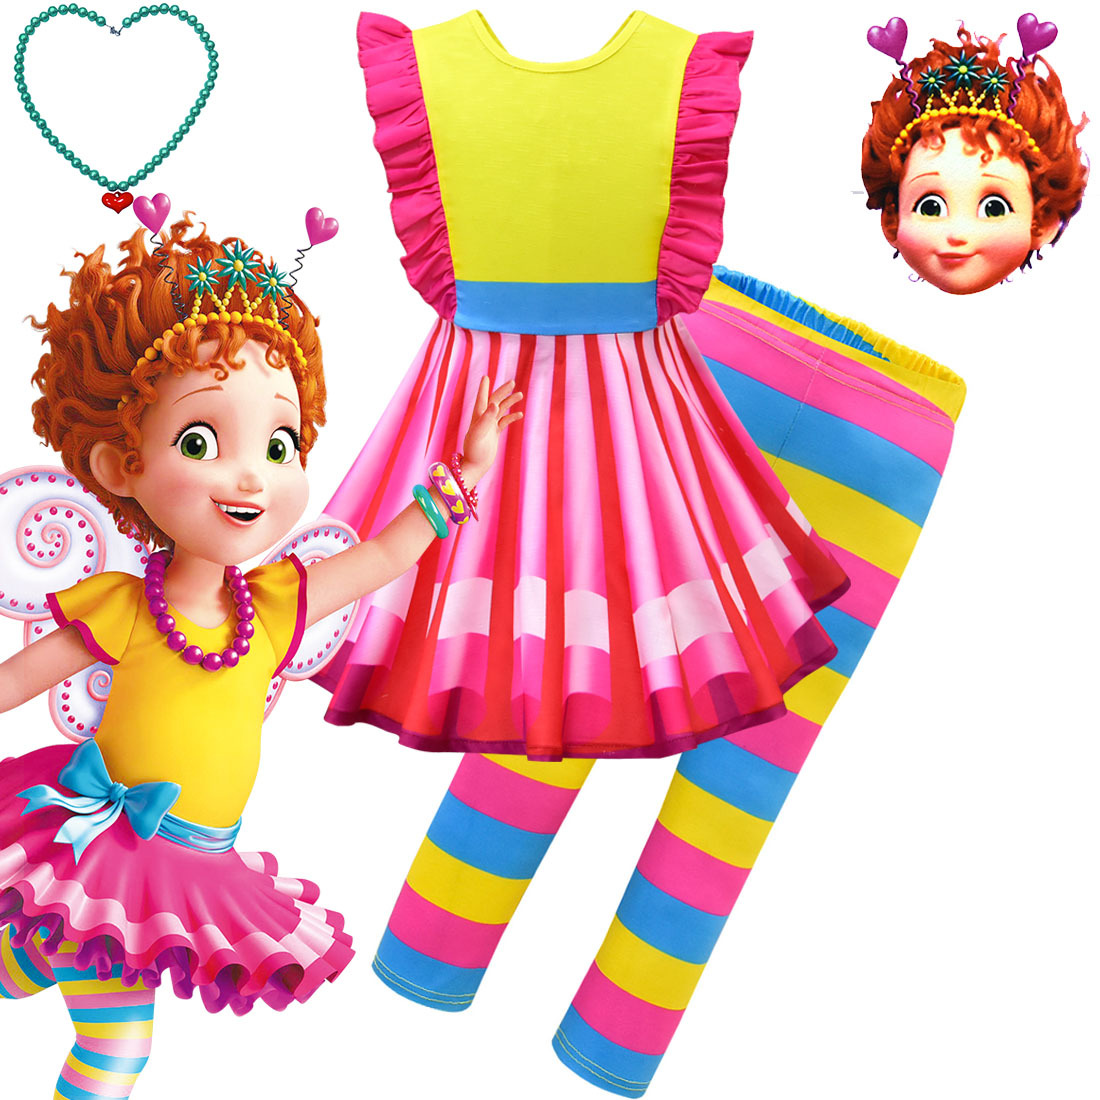 Fancy Nancy Dress Kids Child Fancy Dress Party Lol Costume Unicorn Costume Inspired Tutu Dress Moana Toddler Girls Costume Dress Girls Costumes Aliexpress